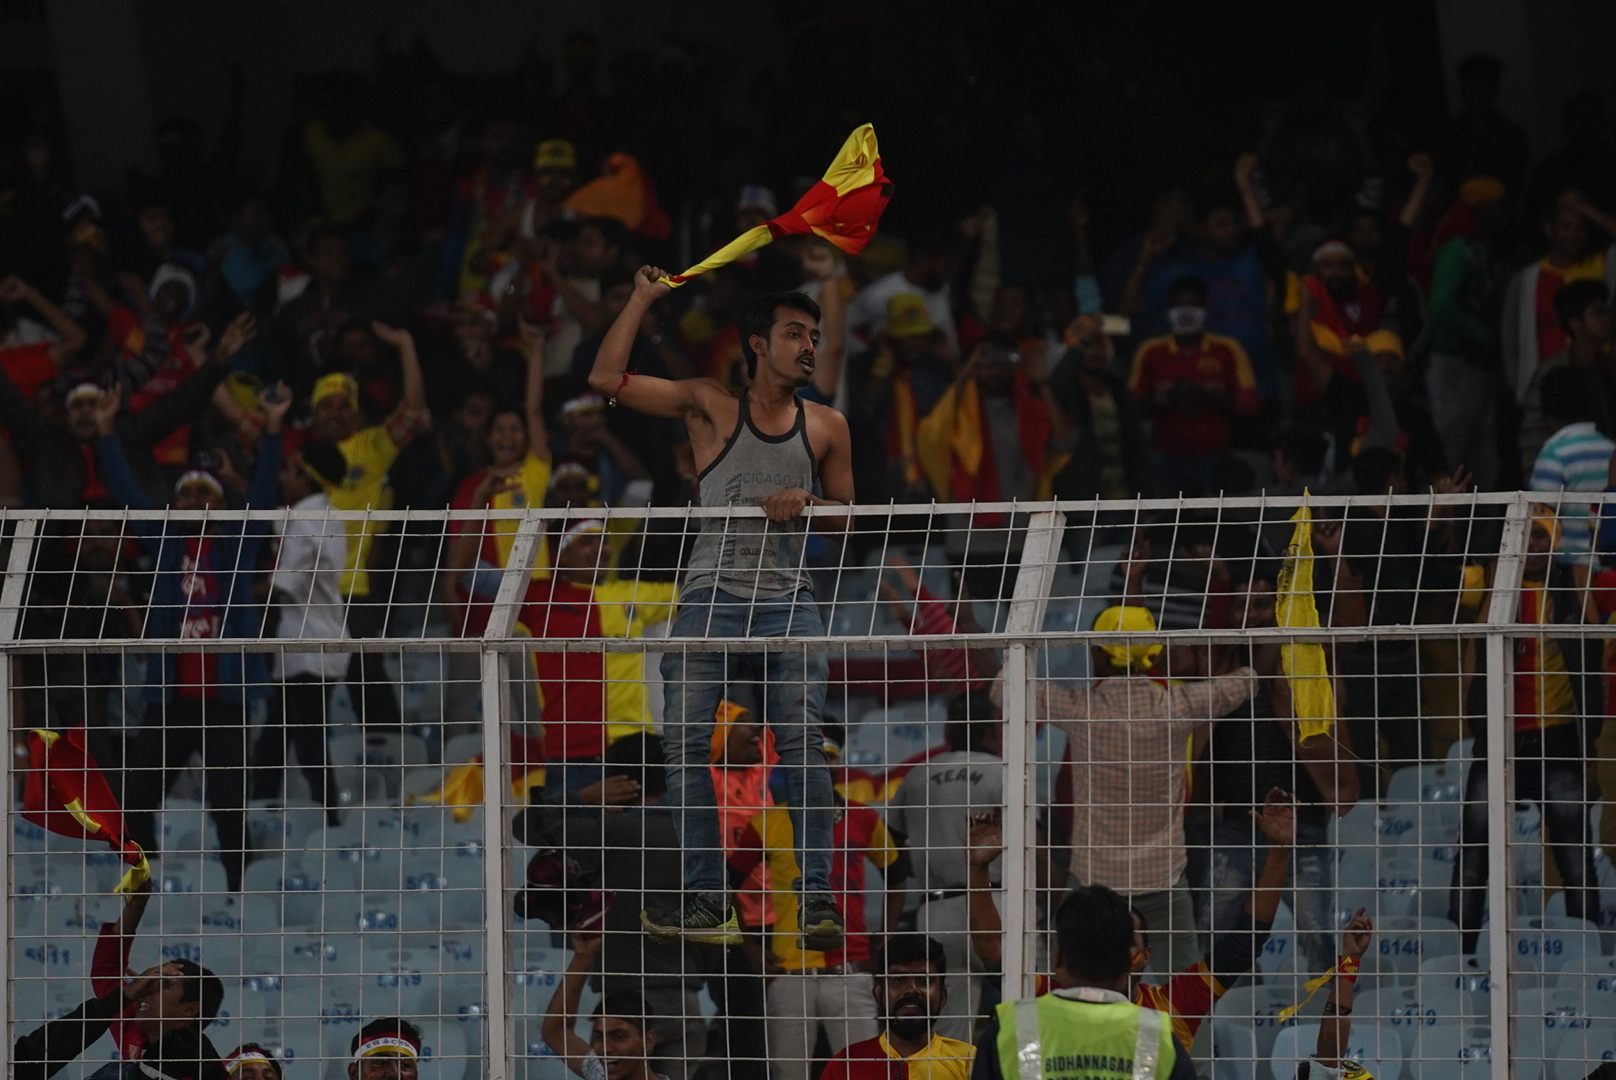 East Bengal fans during an I-League football match earlier in the season